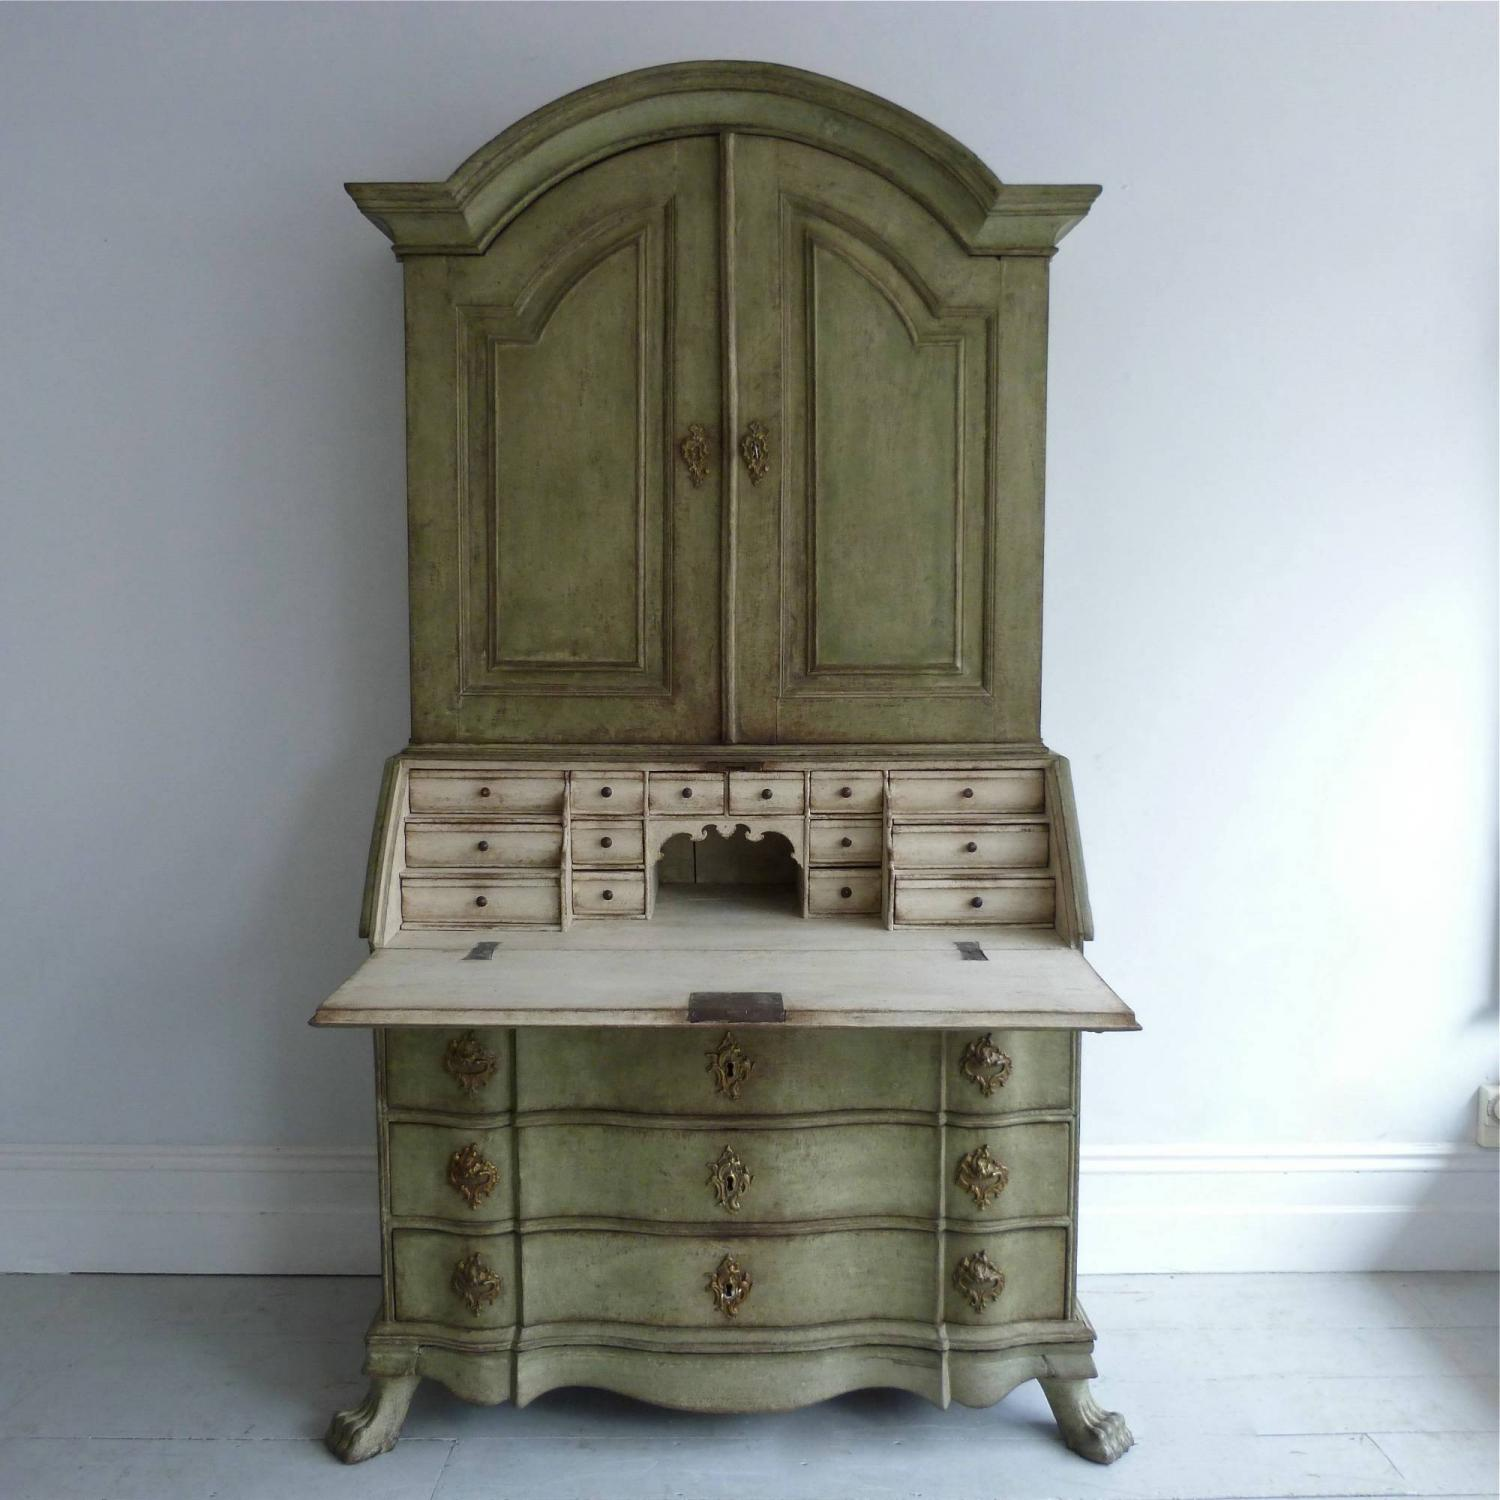 MAGNIFICENT & RICHLY CARVED BAROQUE SECRETAIRE